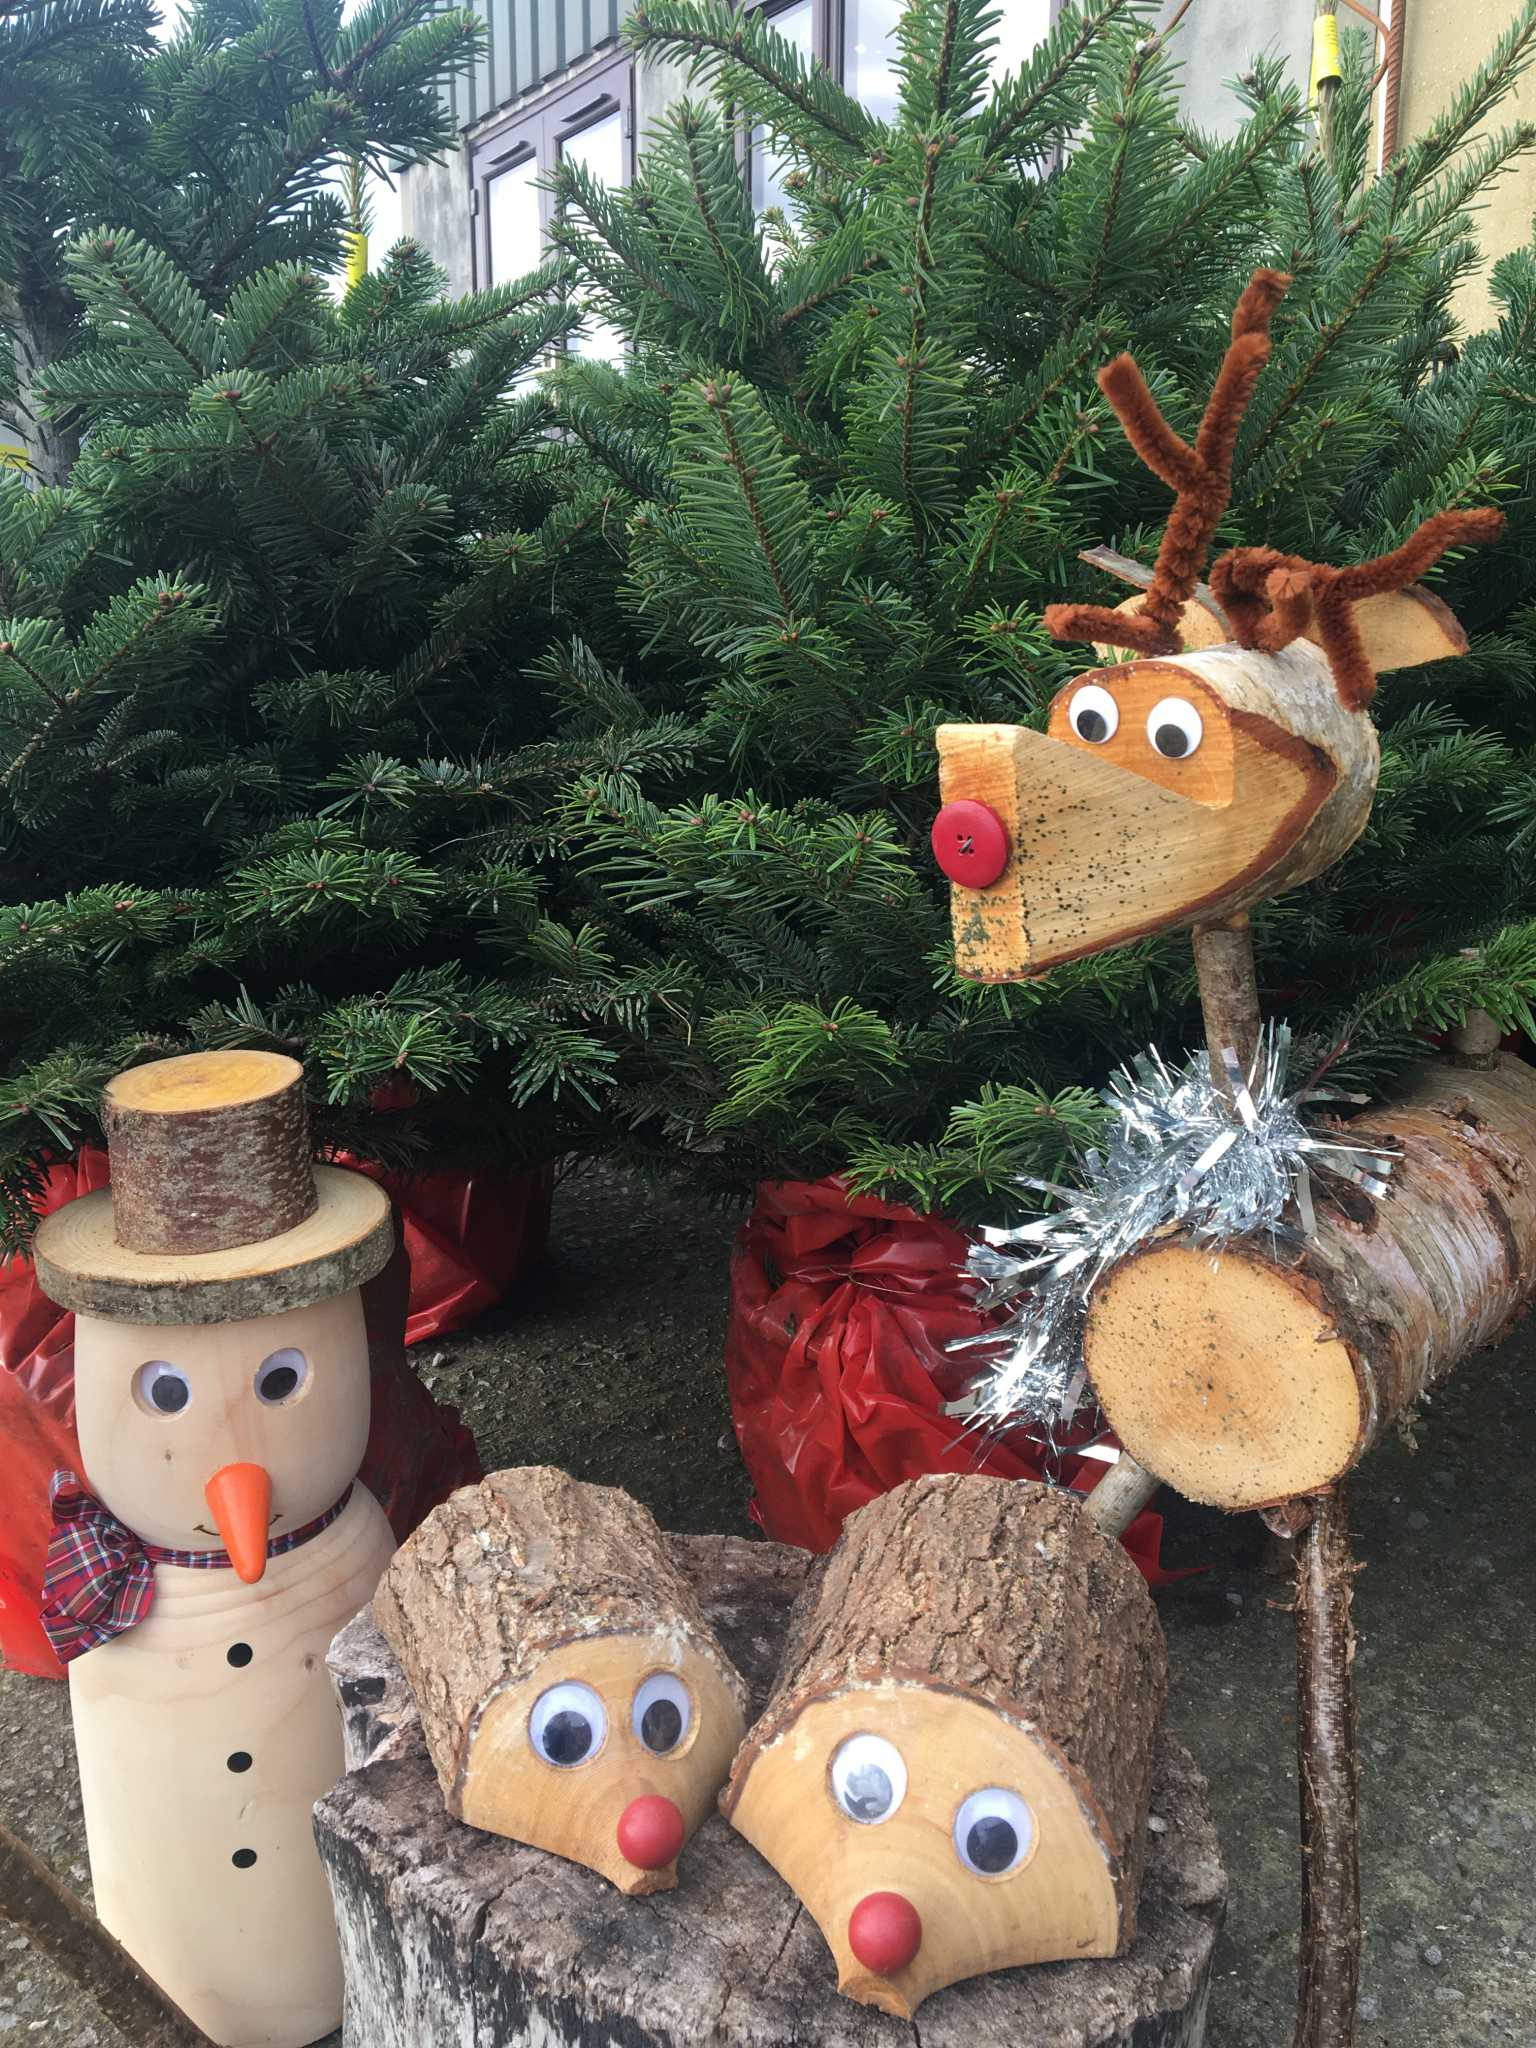 Christmas tree with wooden animals